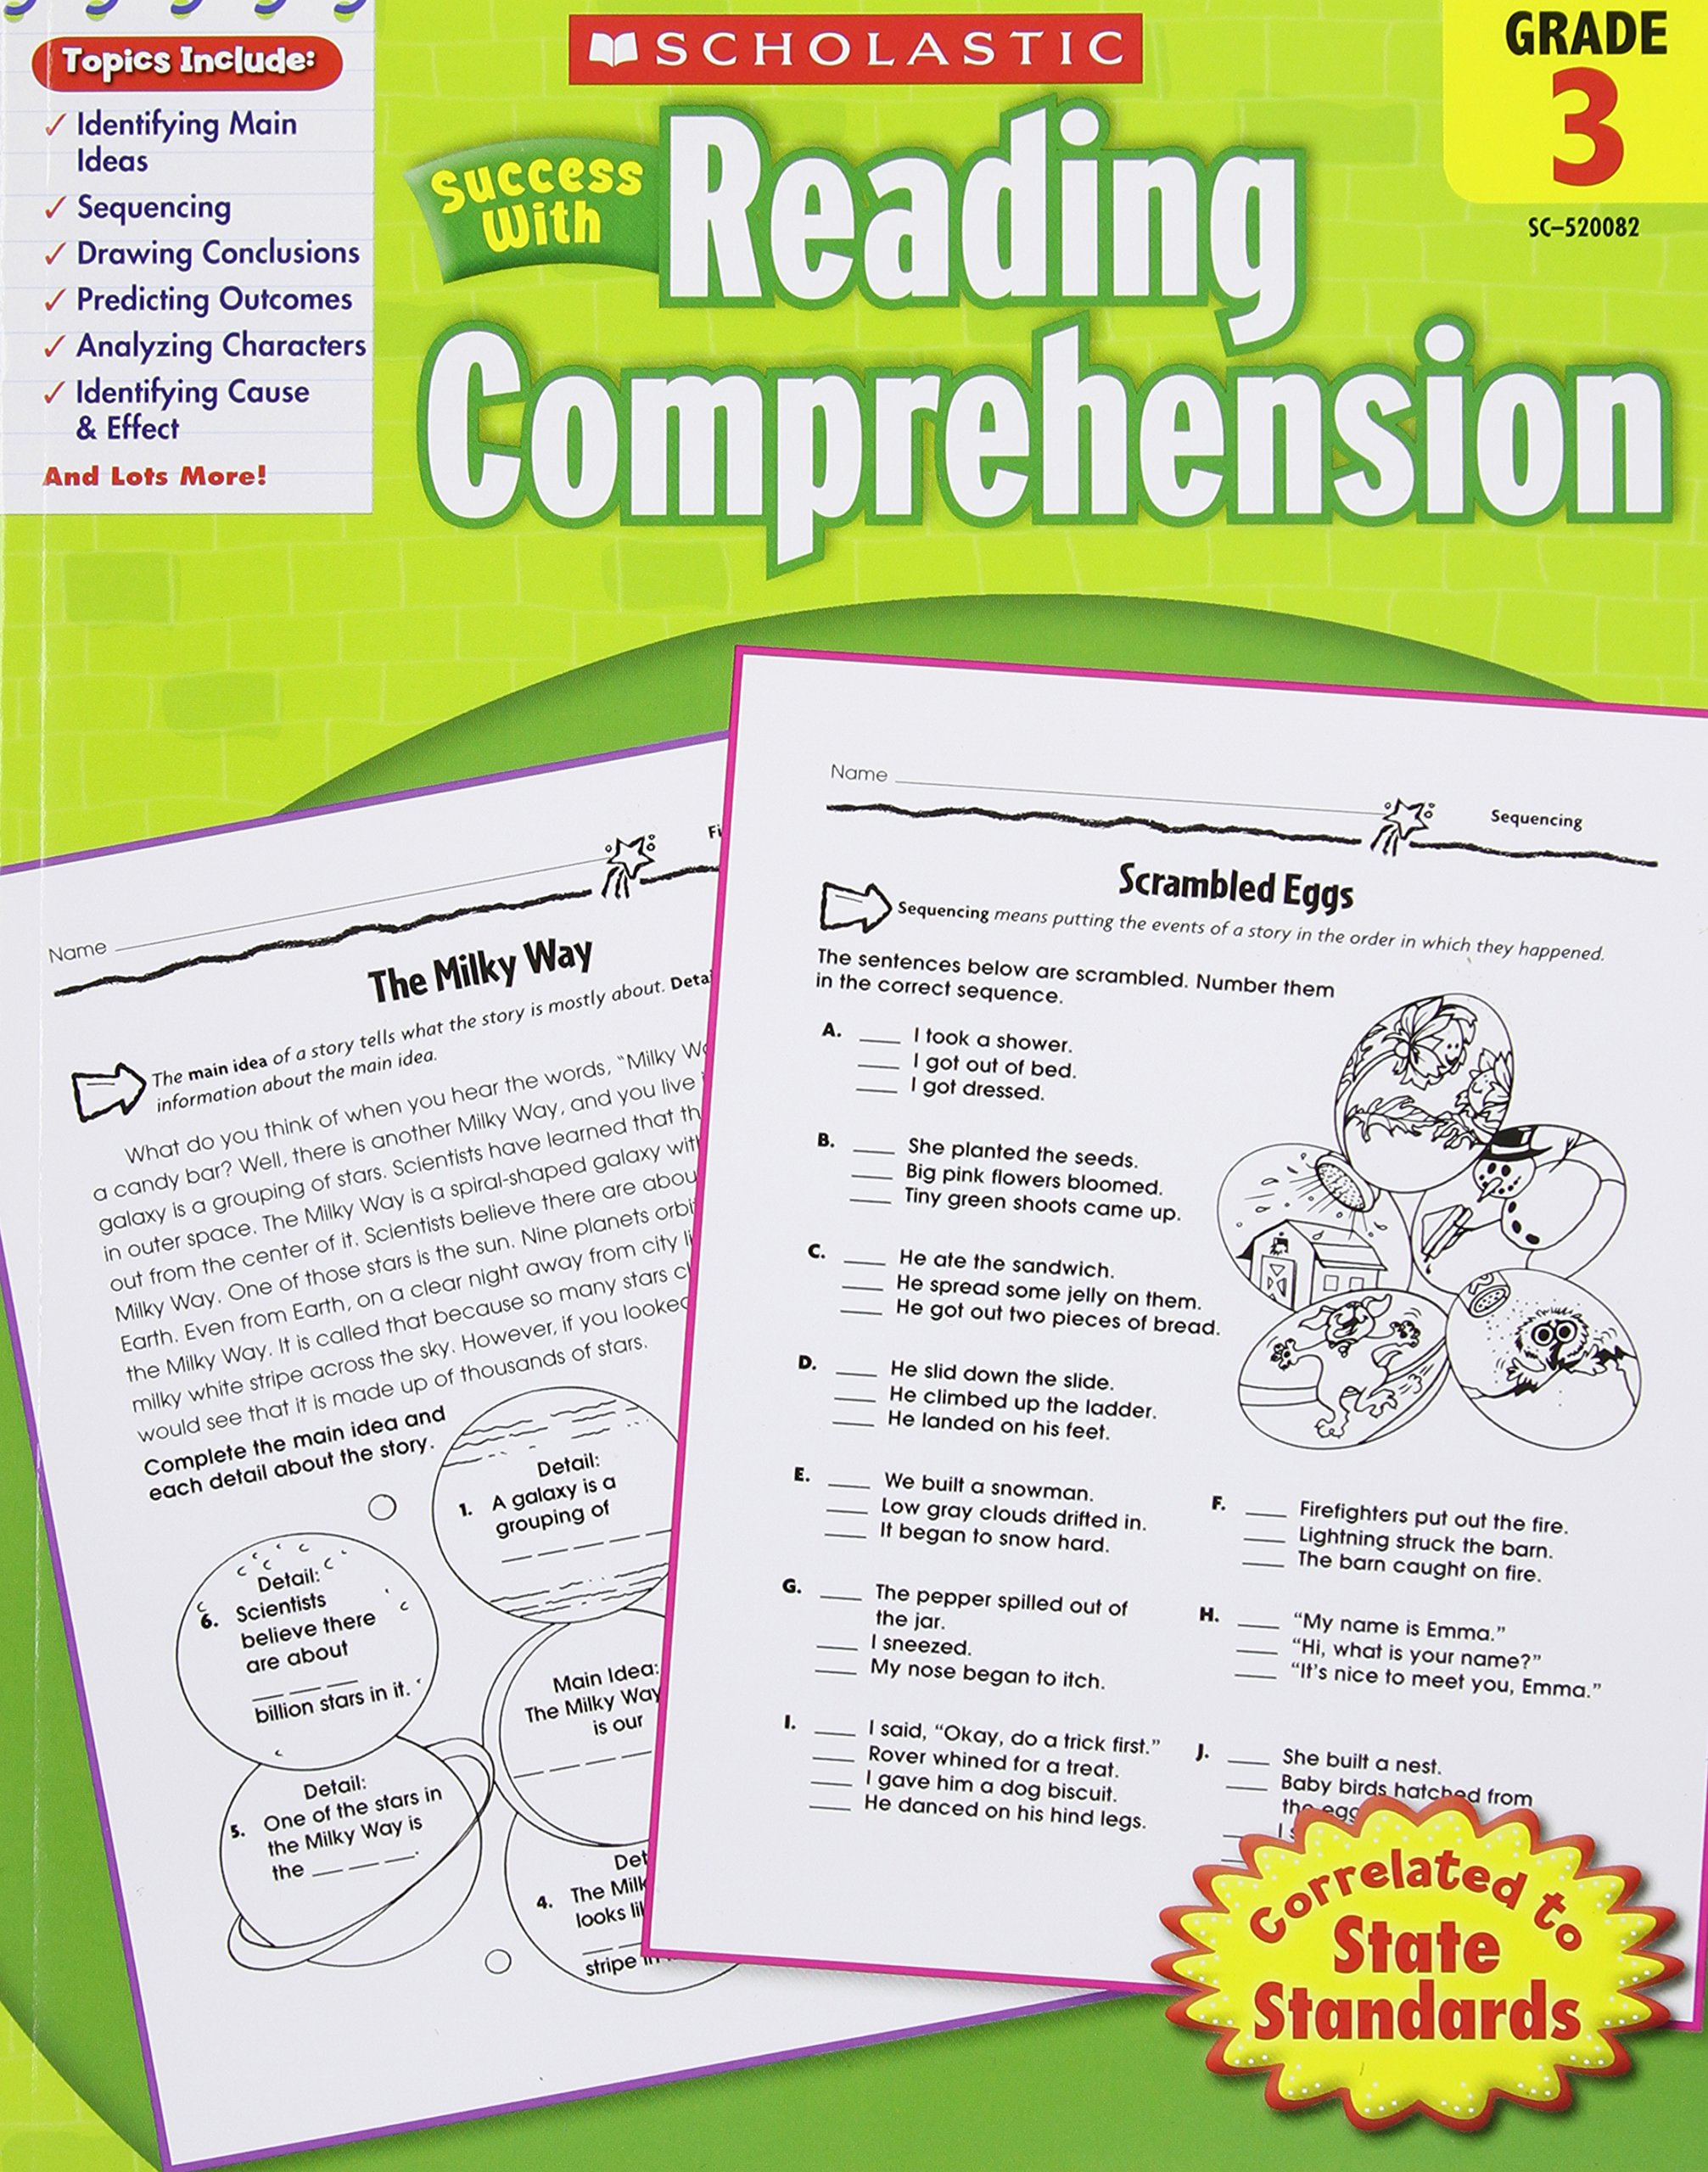 Worksheet Reading Comprehensions For Grade 5 buy scholastic success with reading comprehension grade 3 book online at low prices in india co